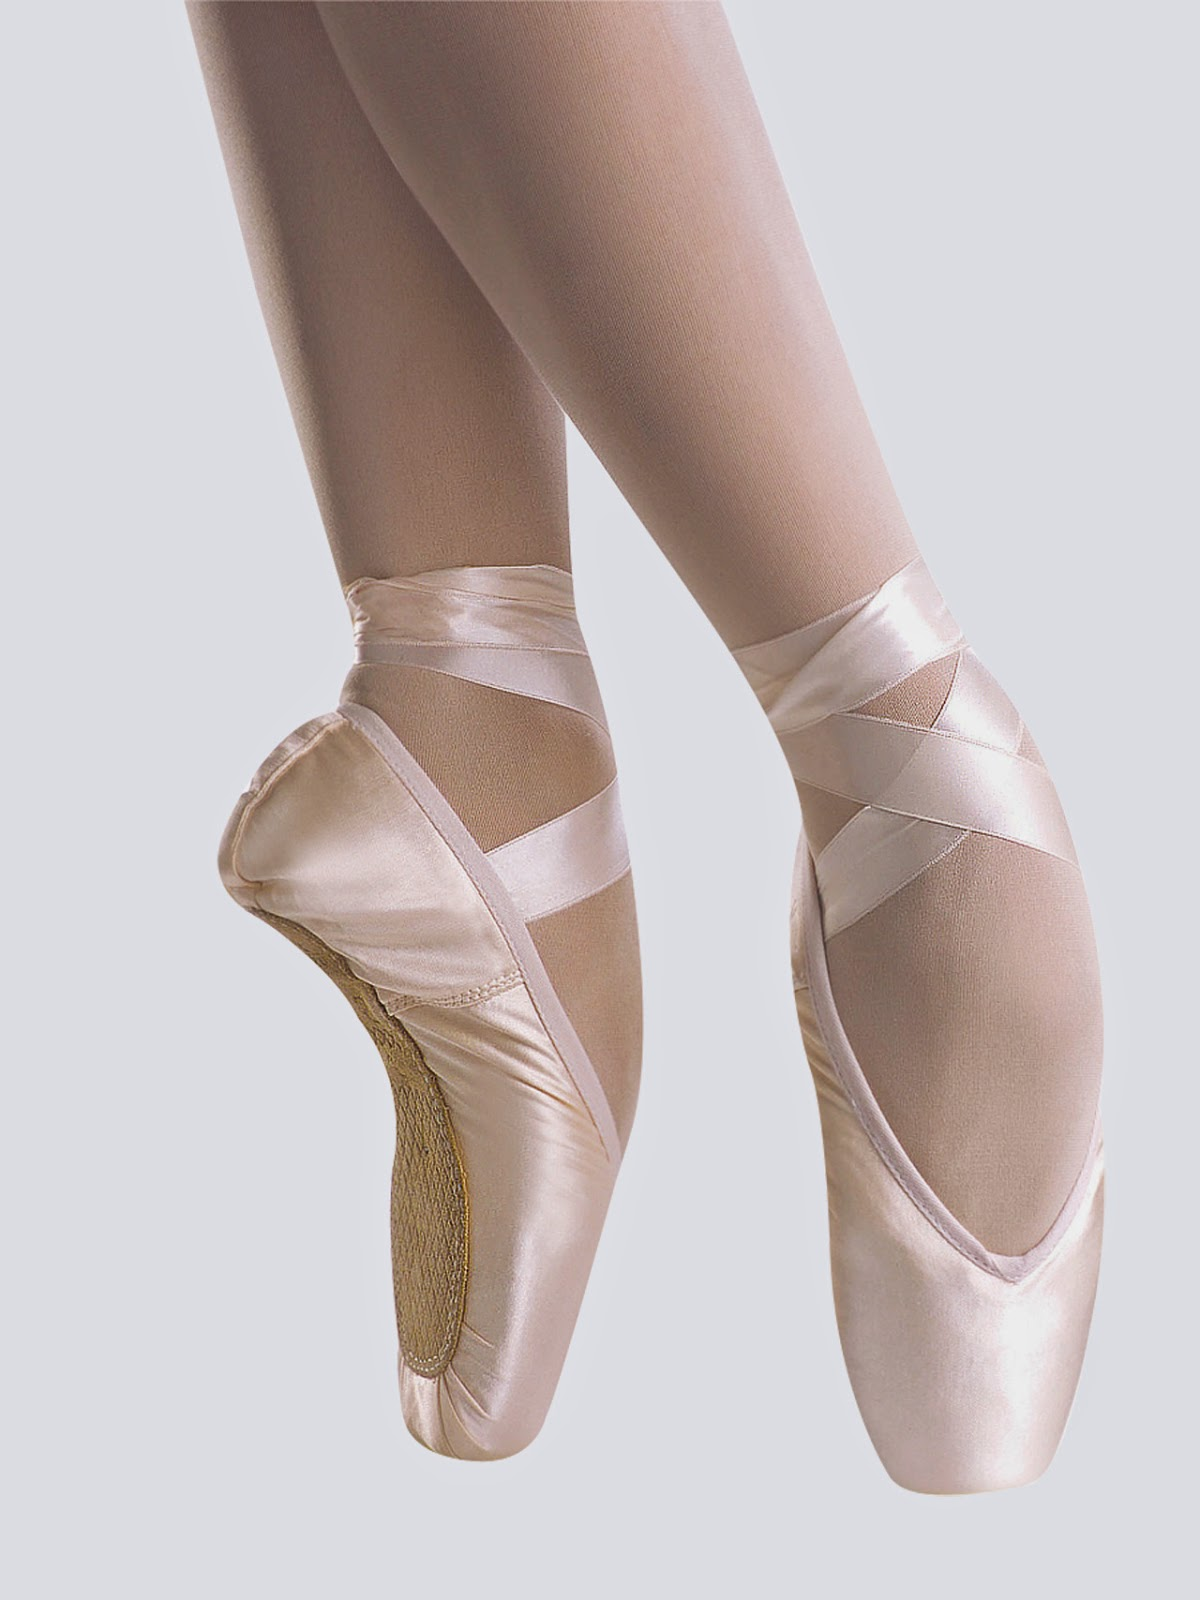 how to break in pointe shoes grishko